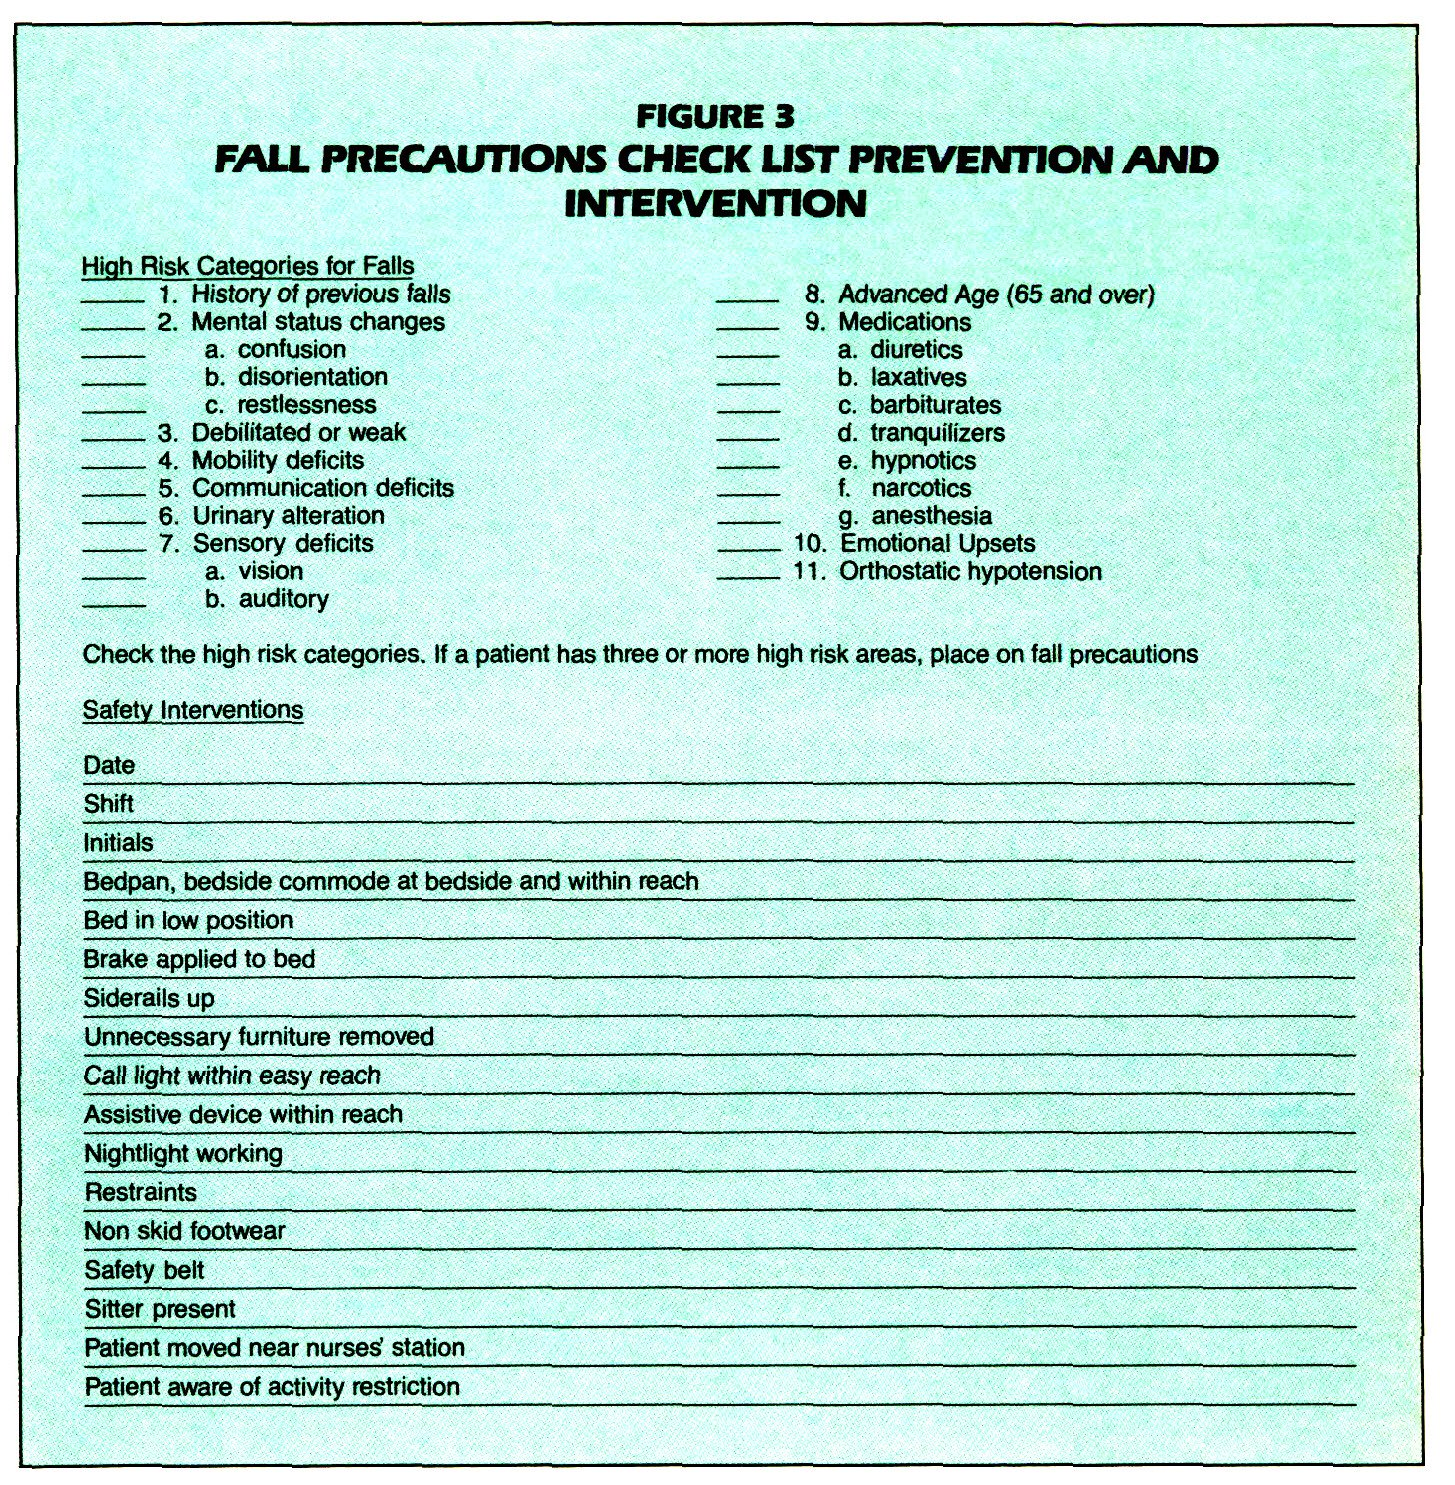 FIGURE 3FALL PRECAUTIONS CHECK LIST PREVENTION AND INTERVENTION